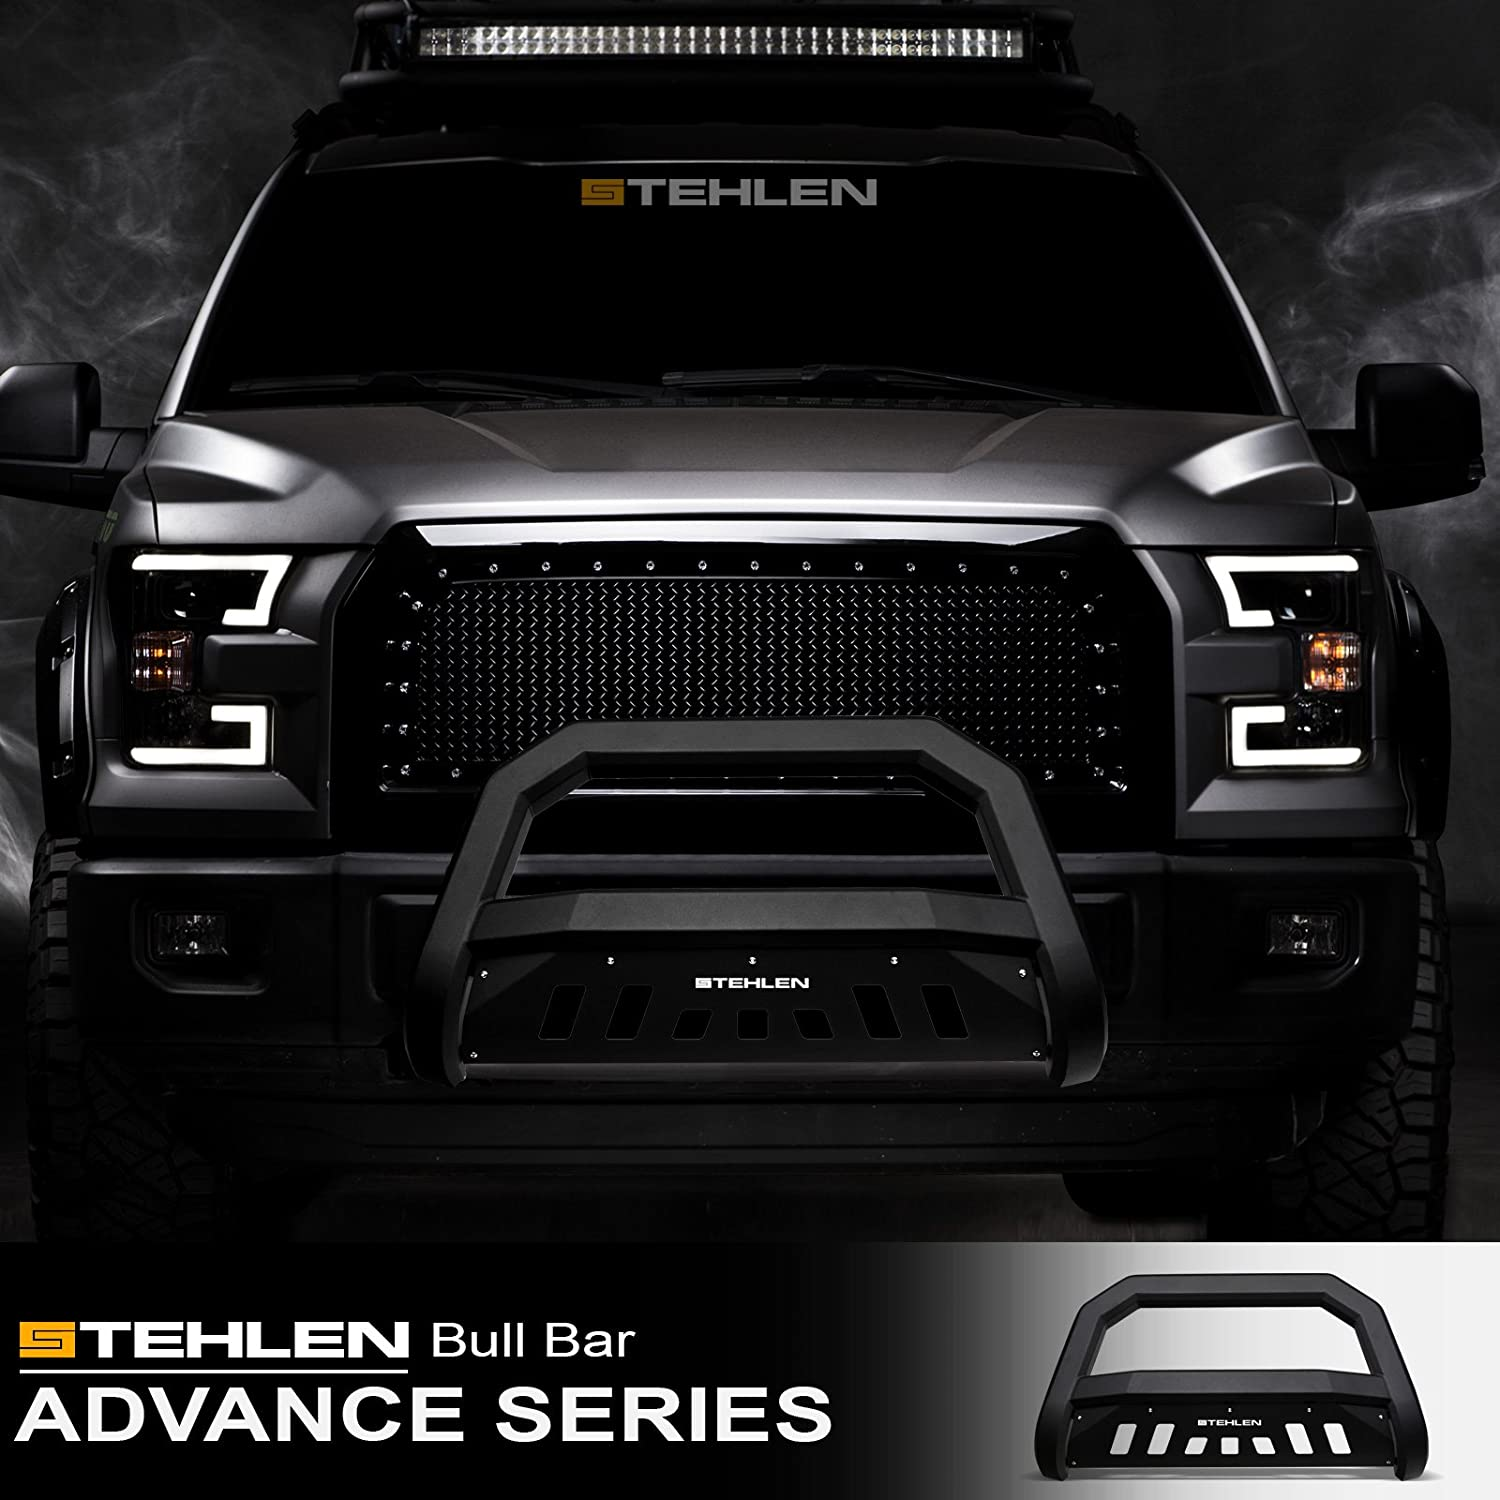 08-09 4500//5500 Matte Black For 06-08 Dodge Ram 1500//06-09 2500//3500 Stehlen 714937183711 Advance Series Bull Bar